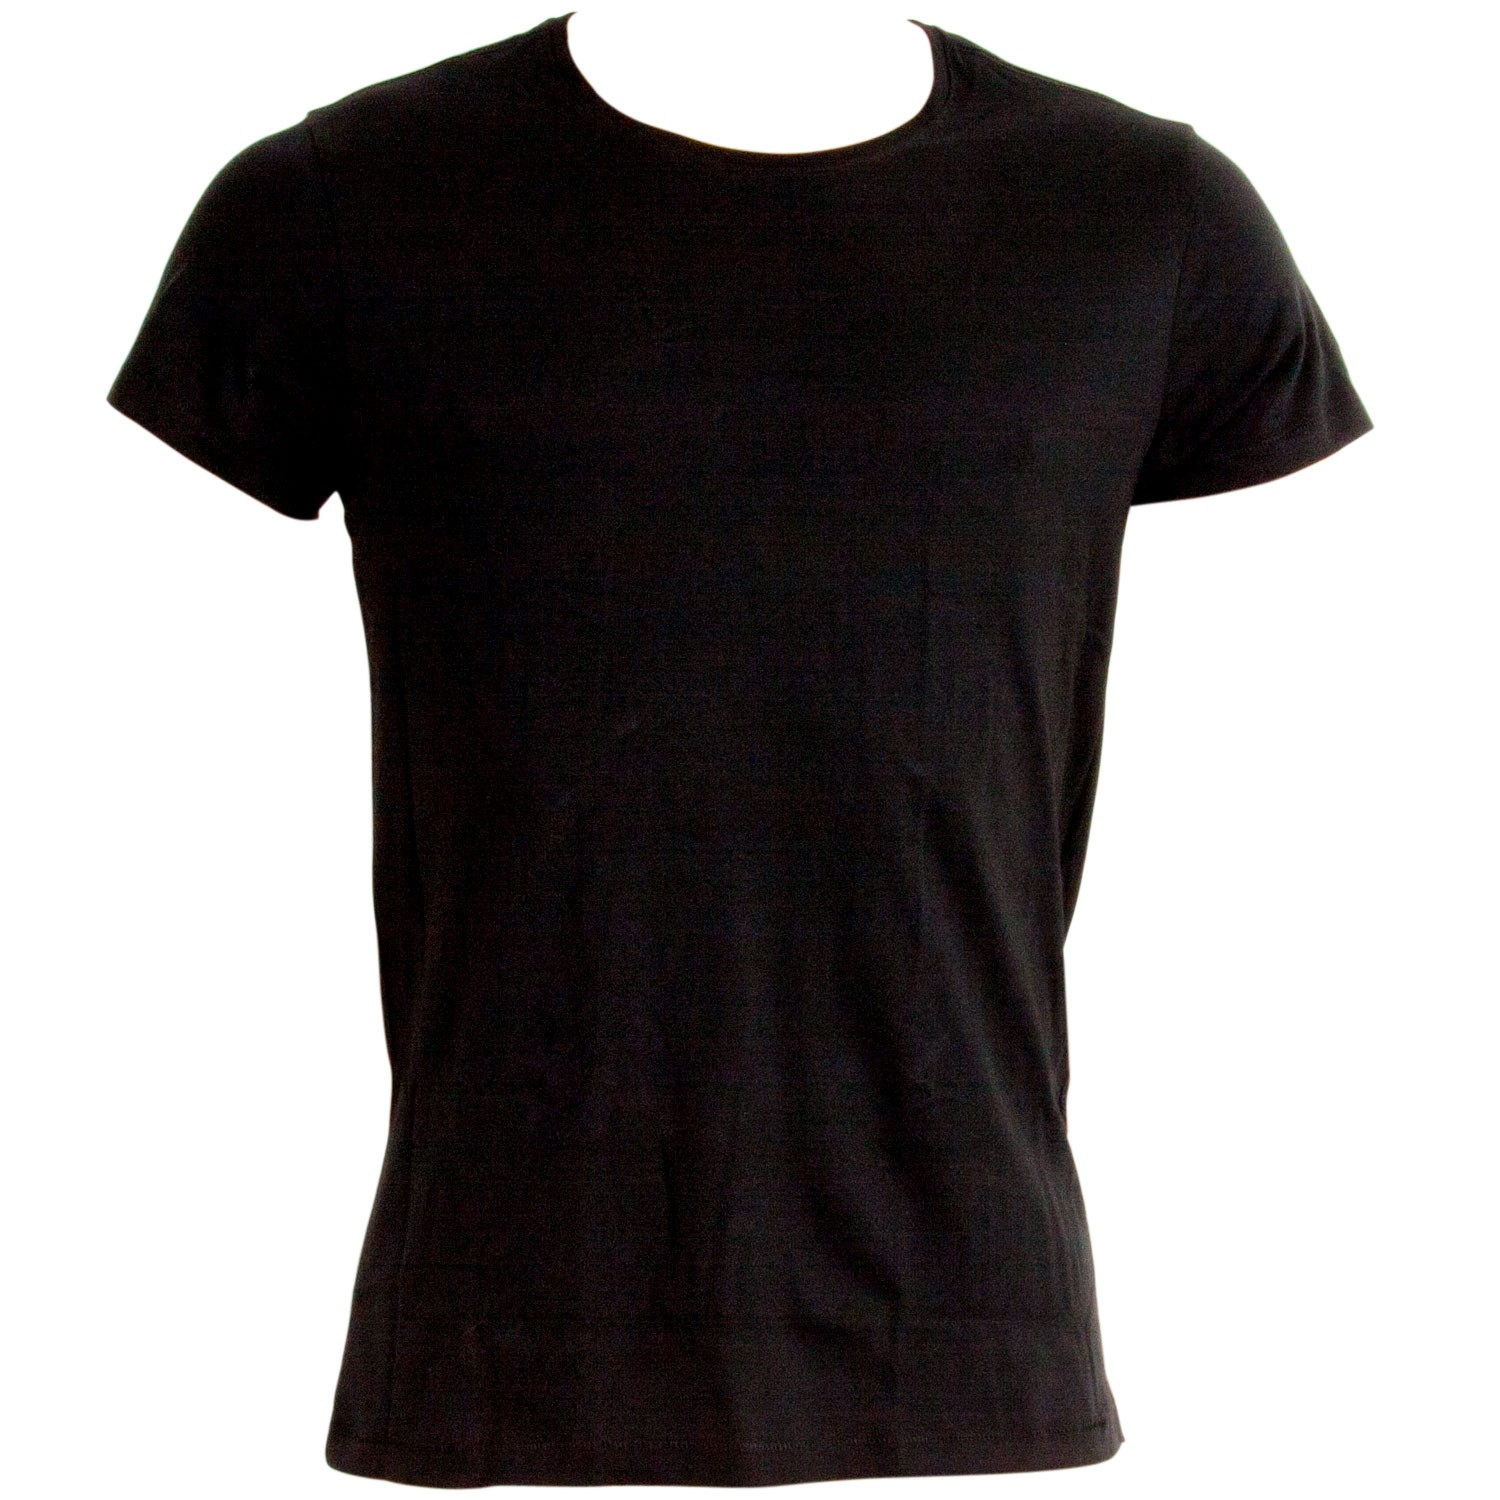 black t shirts template - photo #32